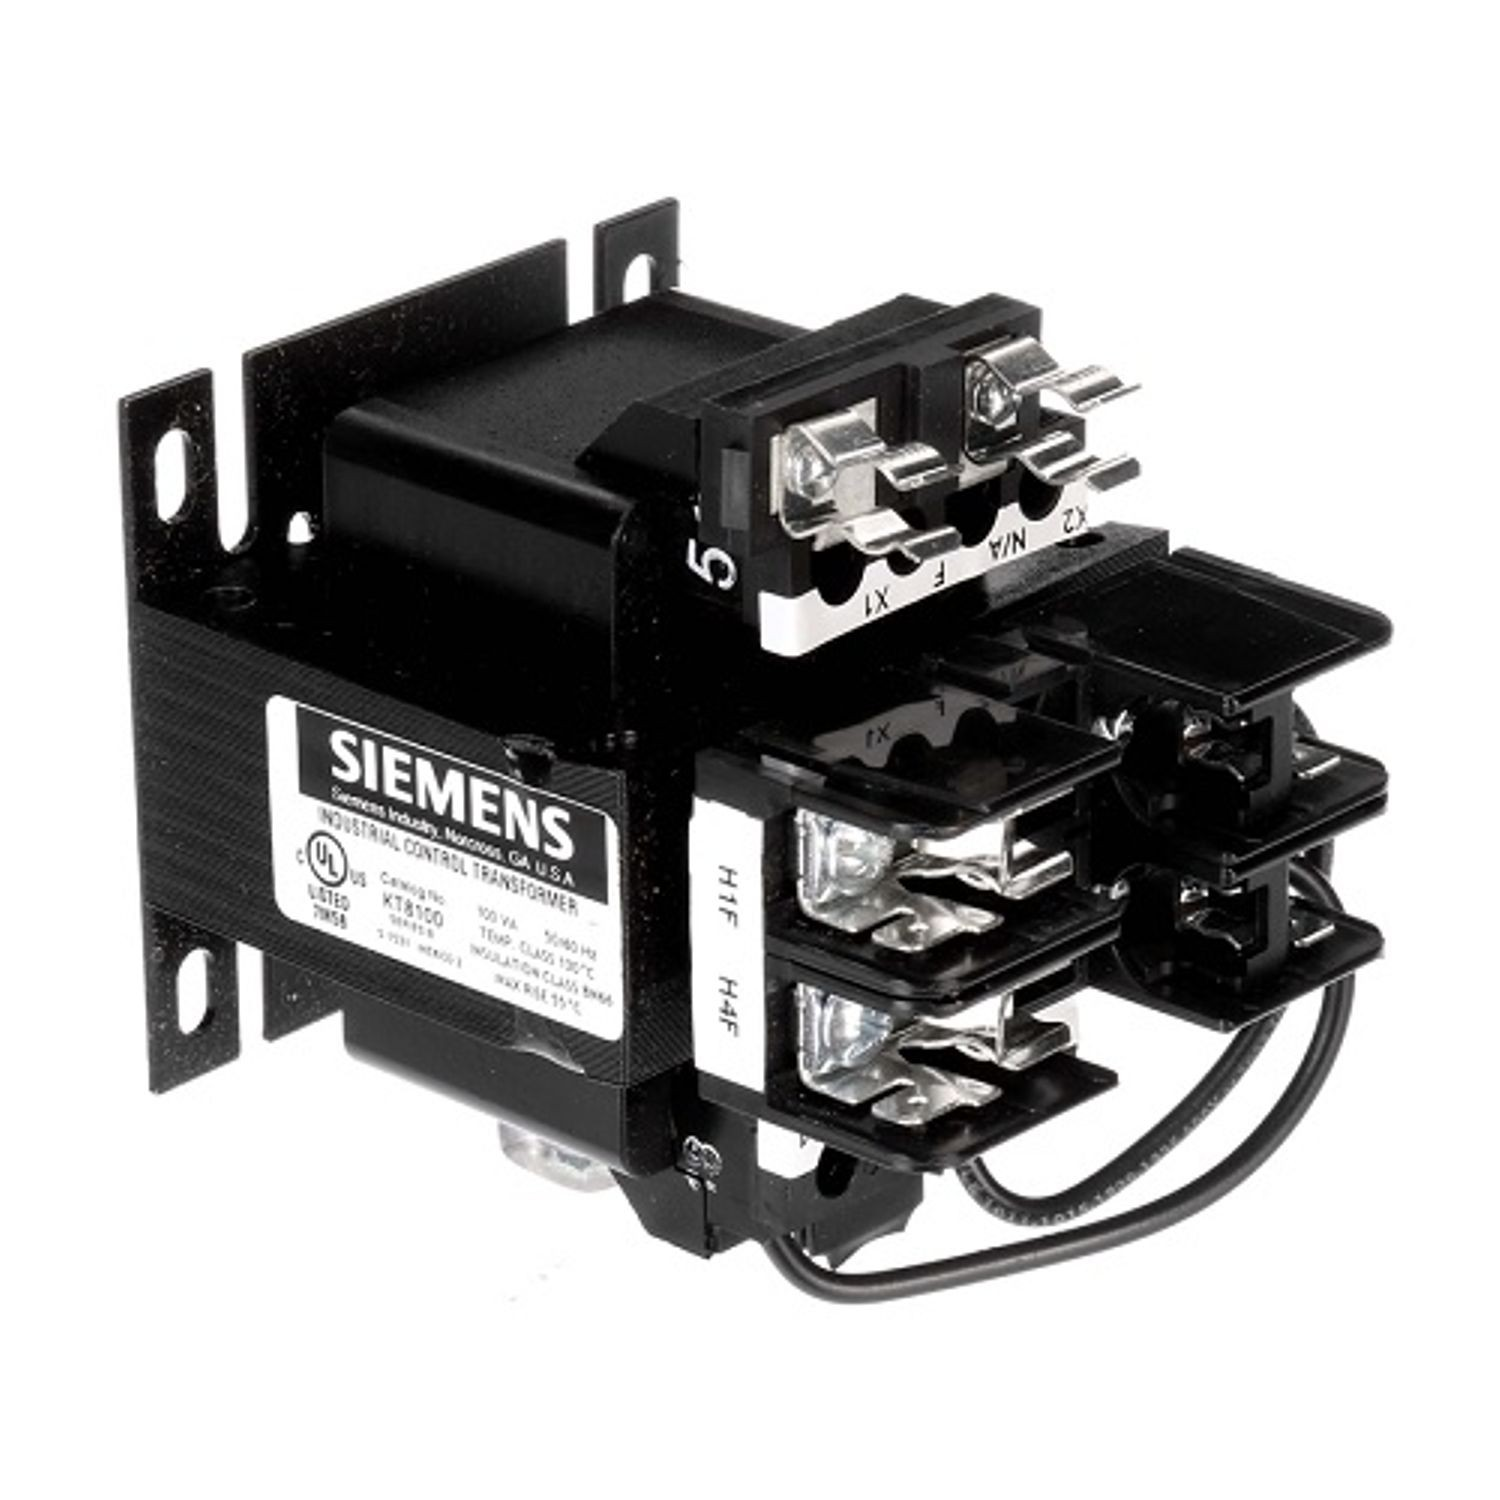 Siemens KT Control Power Transformer Kit, 240/480 VAC Primary, 120 VAC  Secondary, 100 VA, 50/60 Hz, 1 Phase